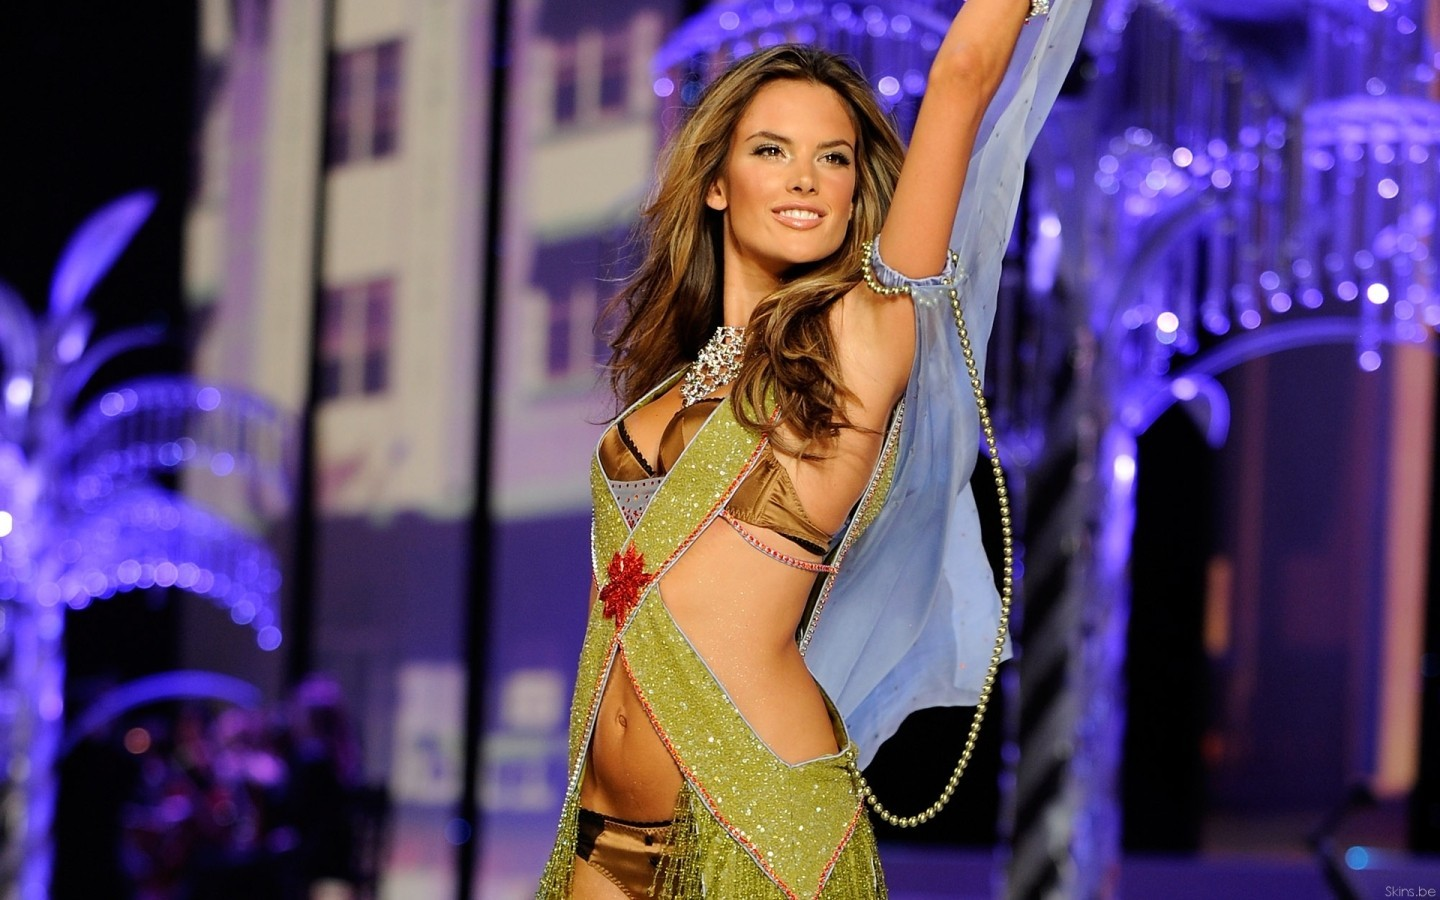 woman alessandra ambrosio supermodels HD Wallpaper